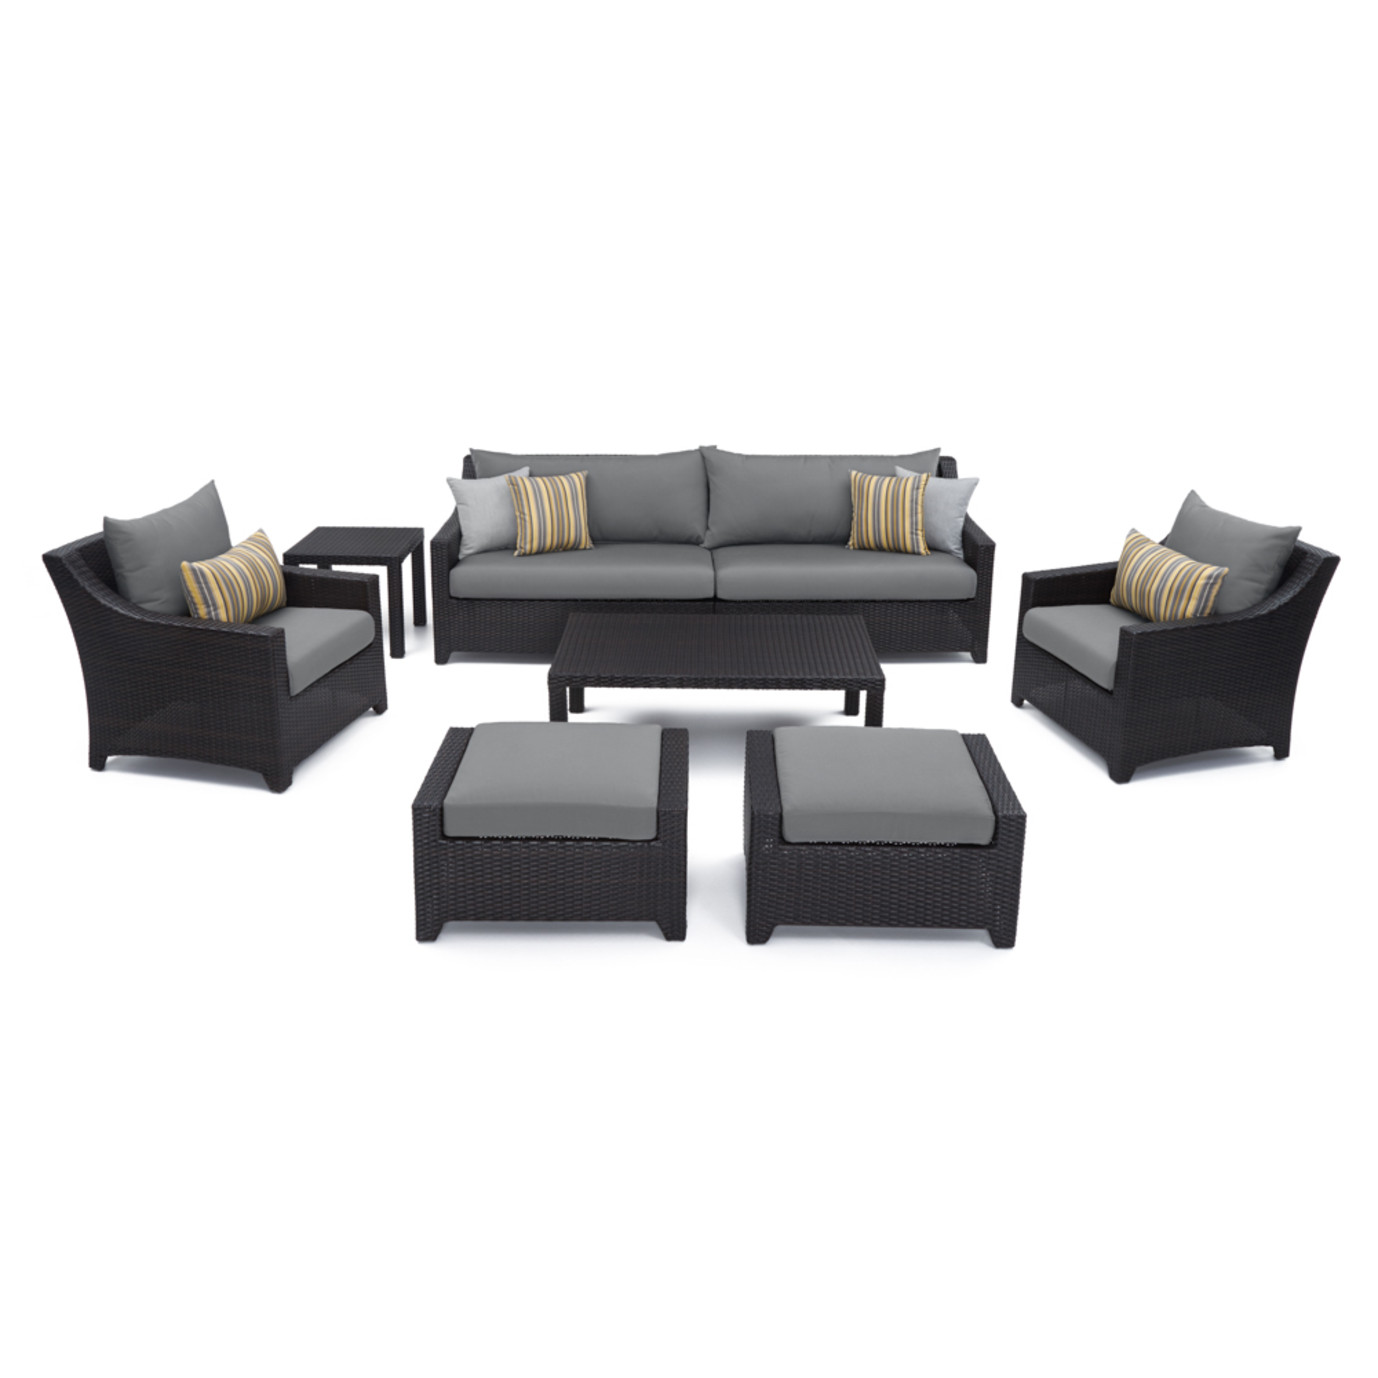 Deco™ 8pc Sofa and Club Chair Set - Charcoal Gray